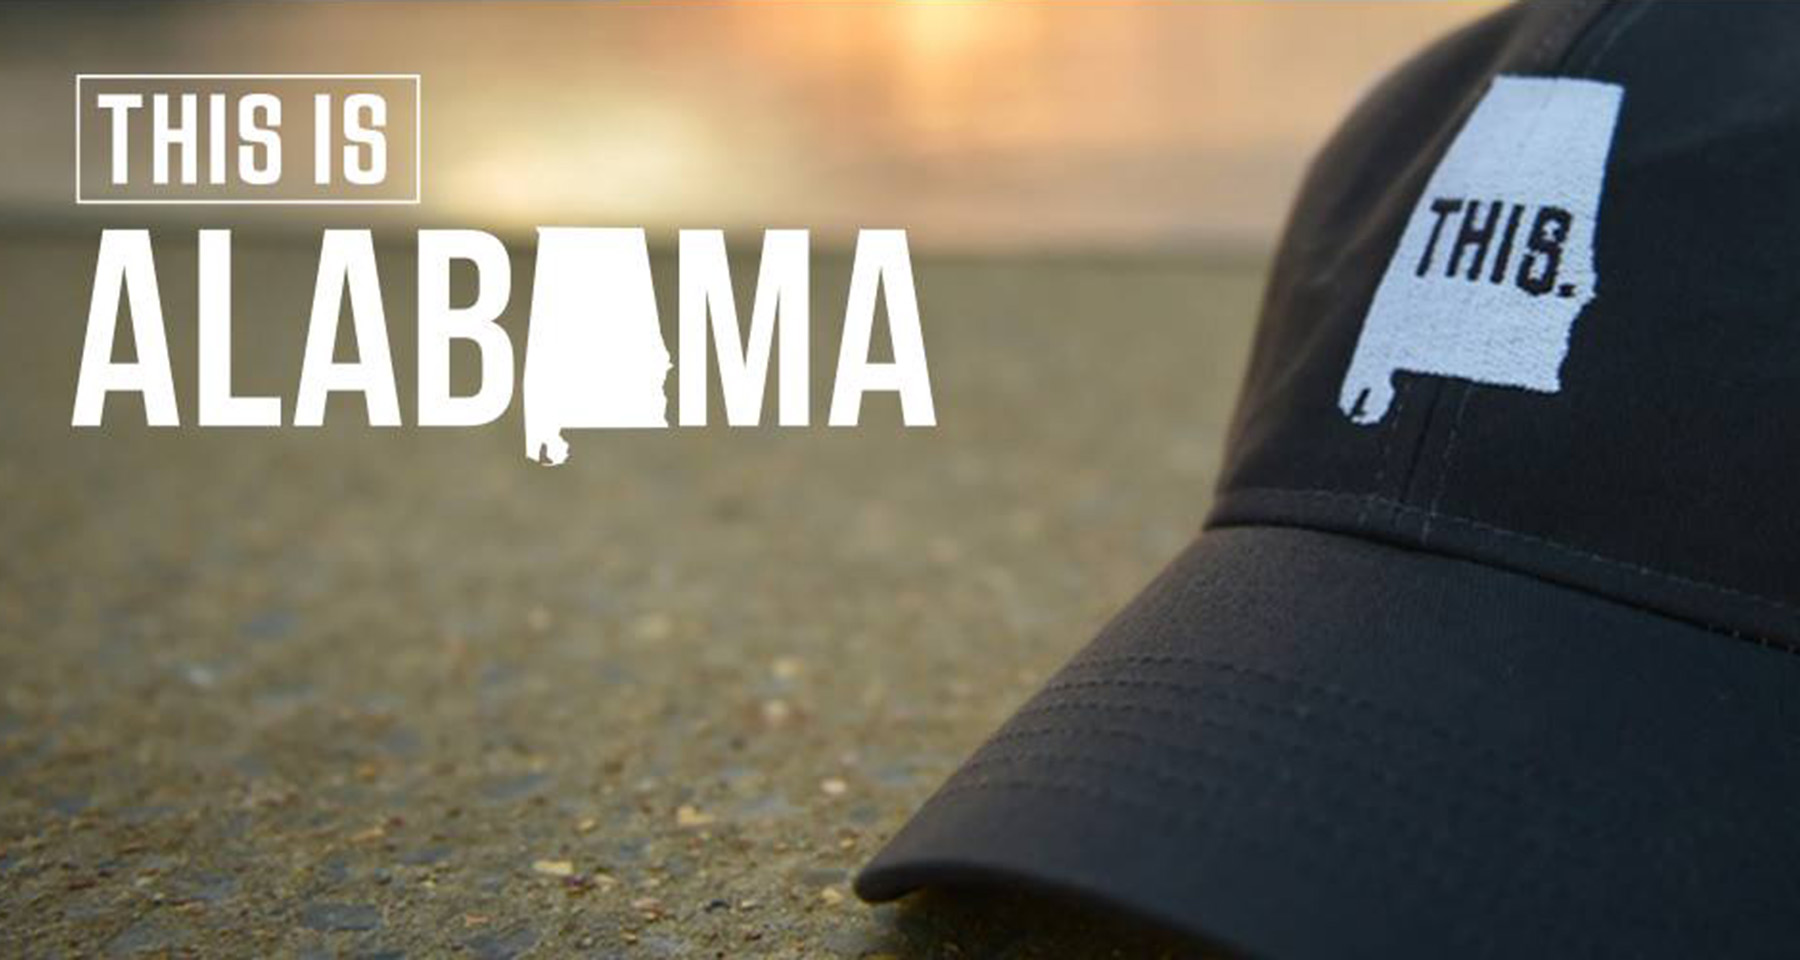 Alabama Media Group boosts audience, advertiser engagement with new brand